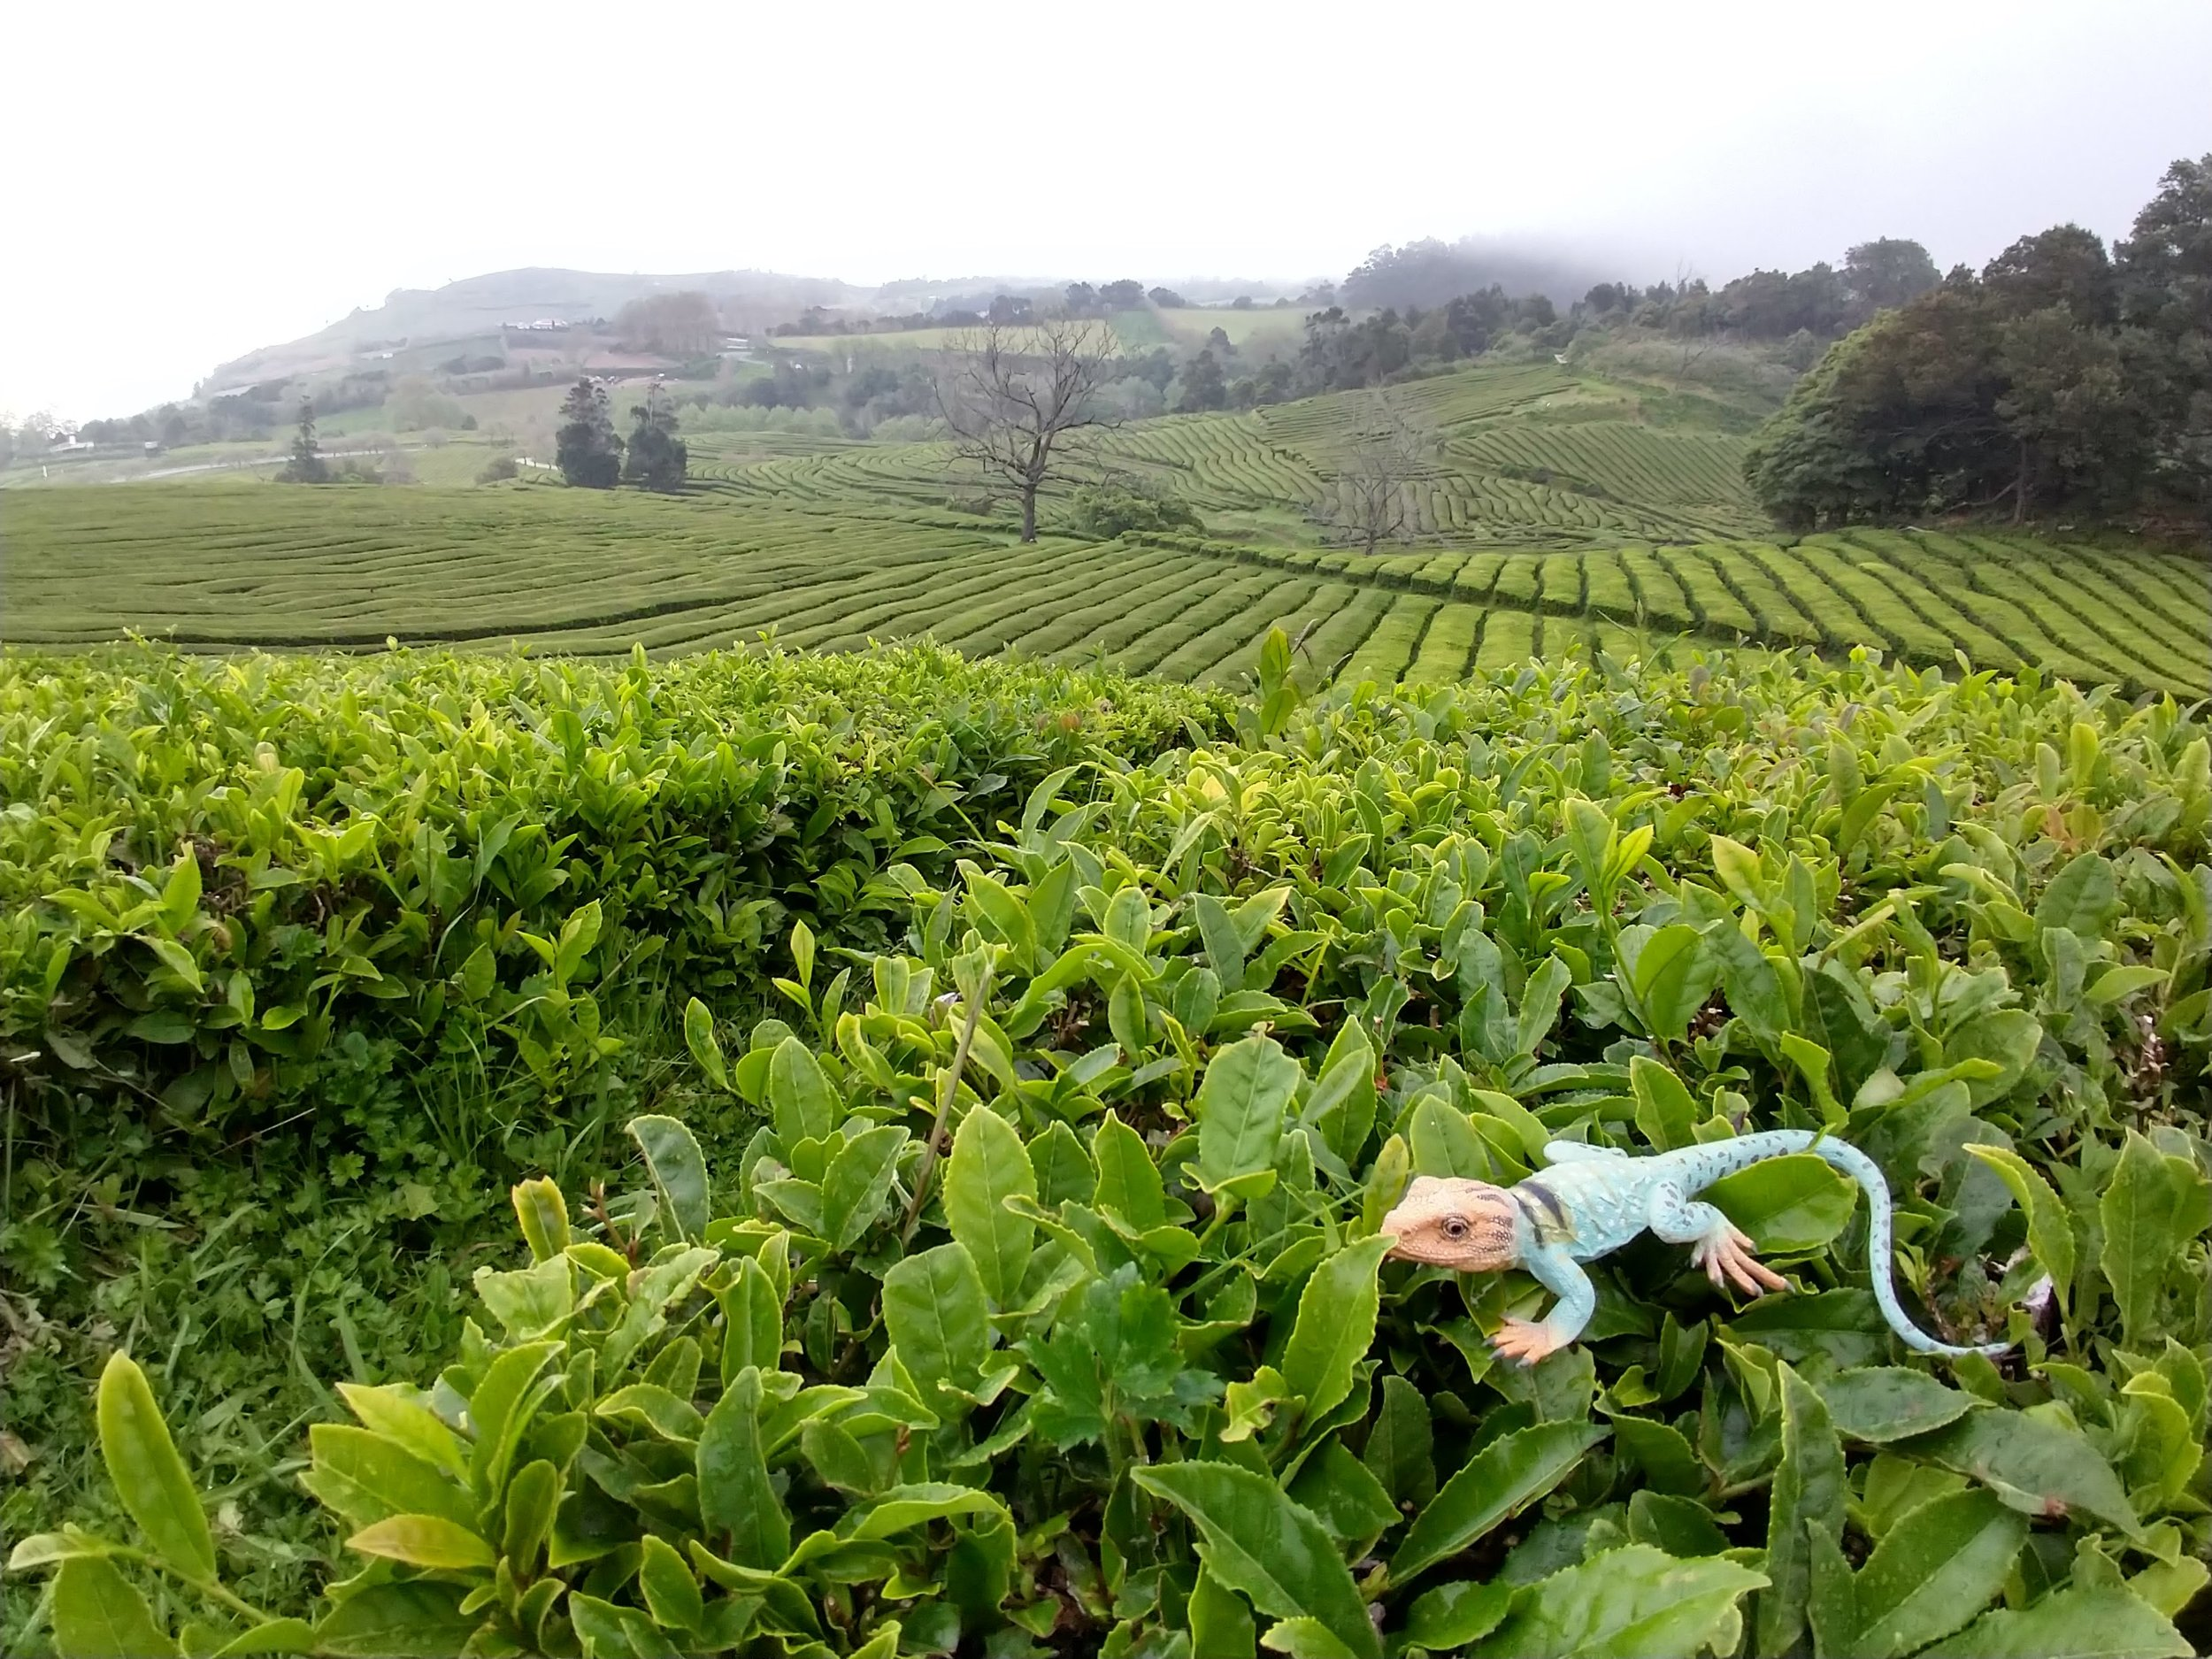 Kanab munching on some tea leaves in Sao Miguel, the Azores Islands in Portugal.